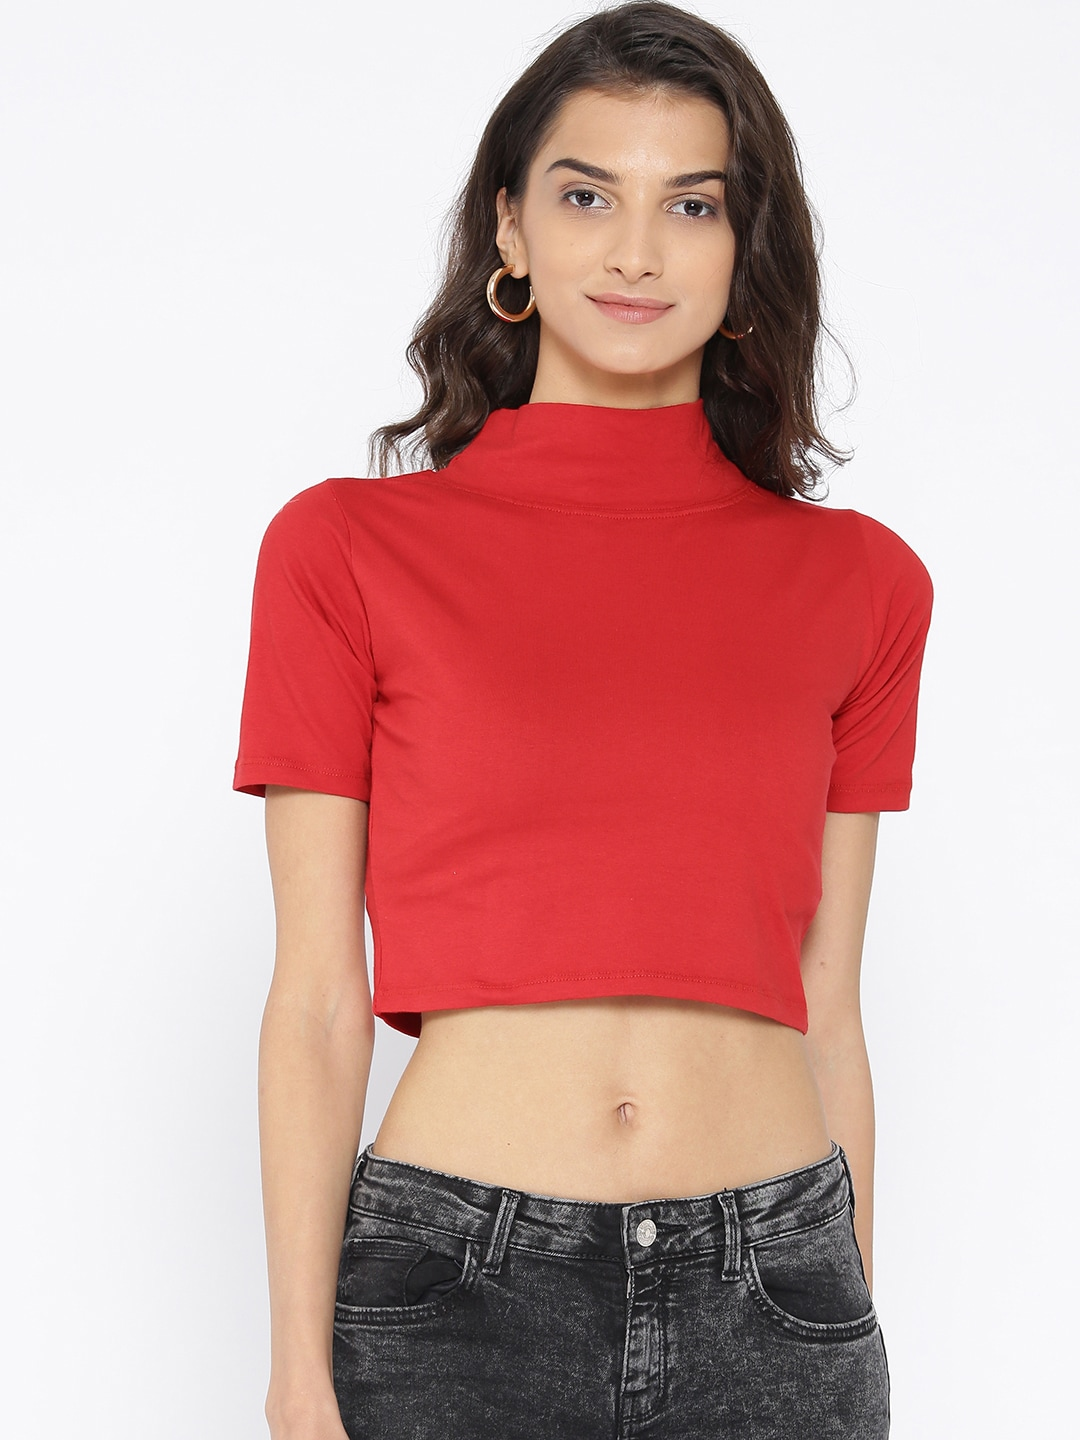 b41eb813401 Cation Red Crop Top